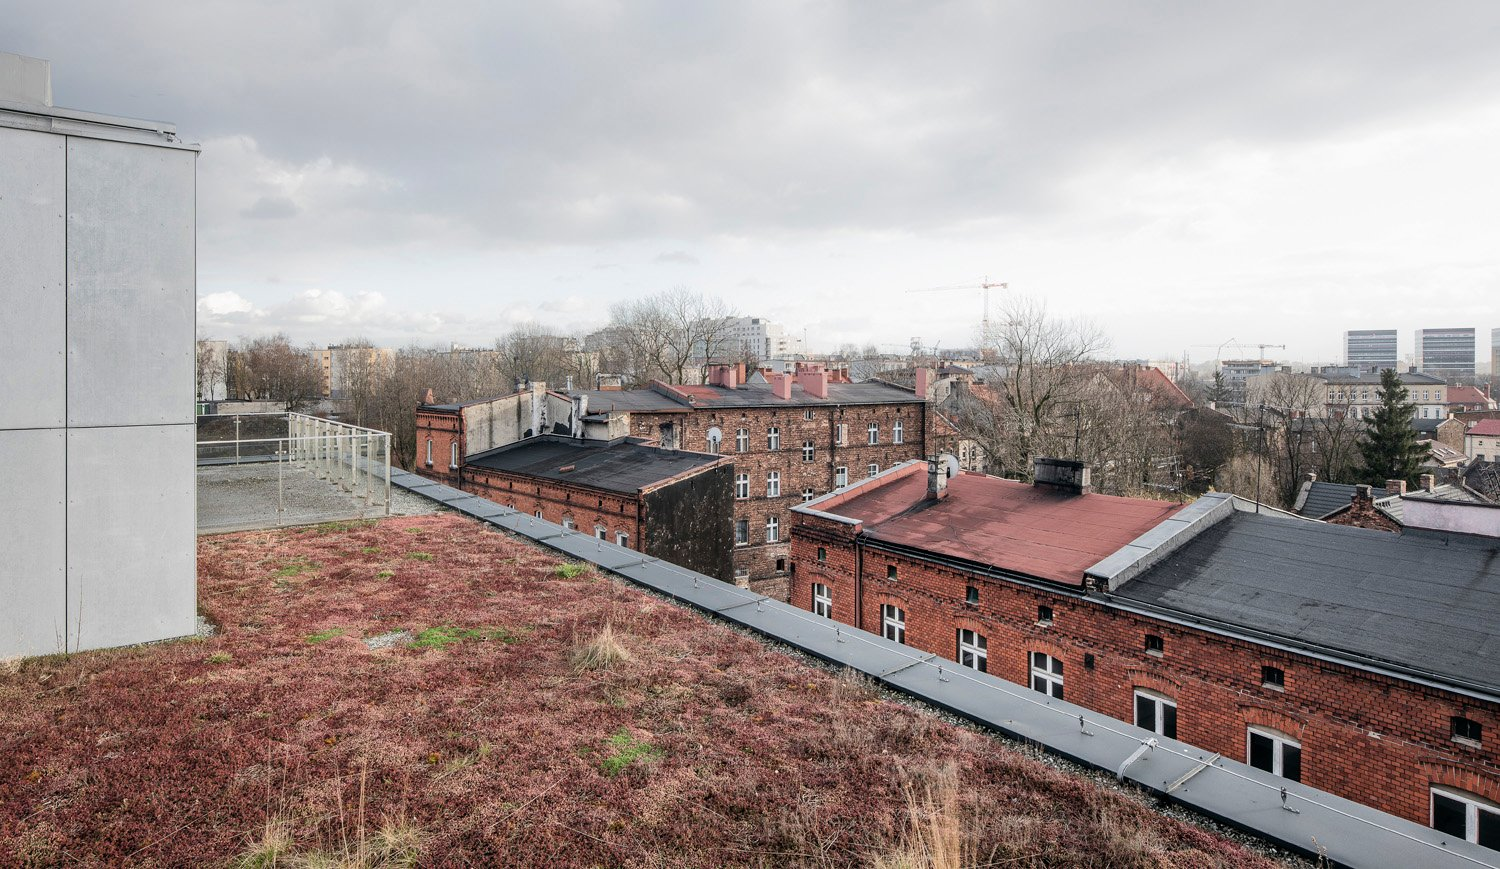 Oppositely to the surrounding area, all Baildomb roofs are covered with greenery Juliusz Sokolowski